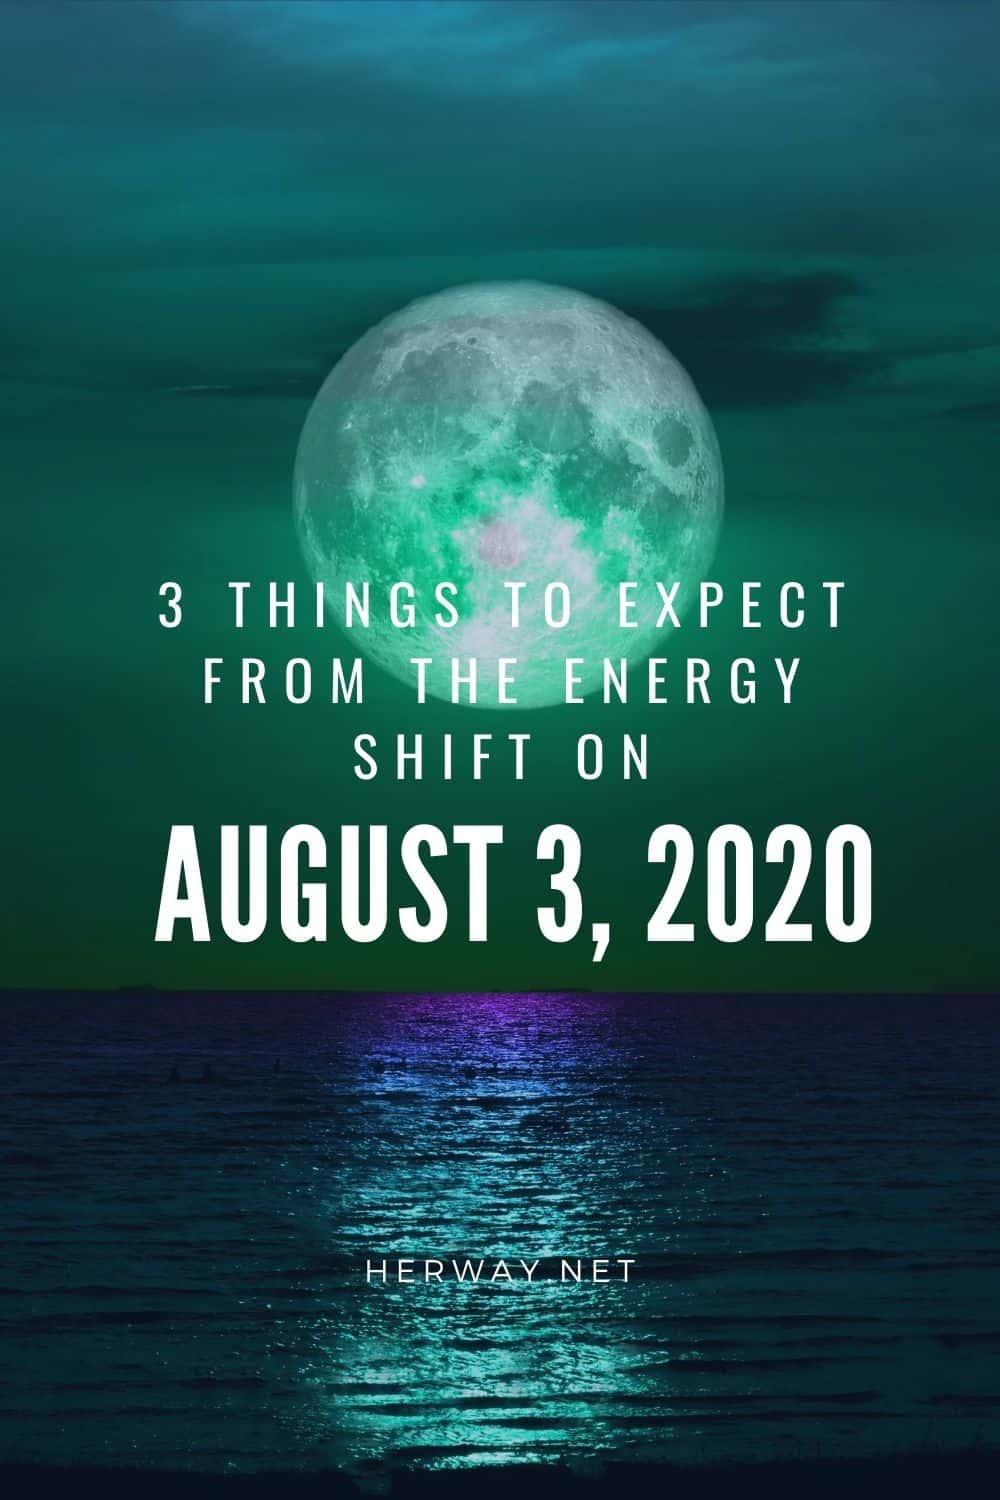 3 Things To Expect From The Energy Shift On August 3, 2020